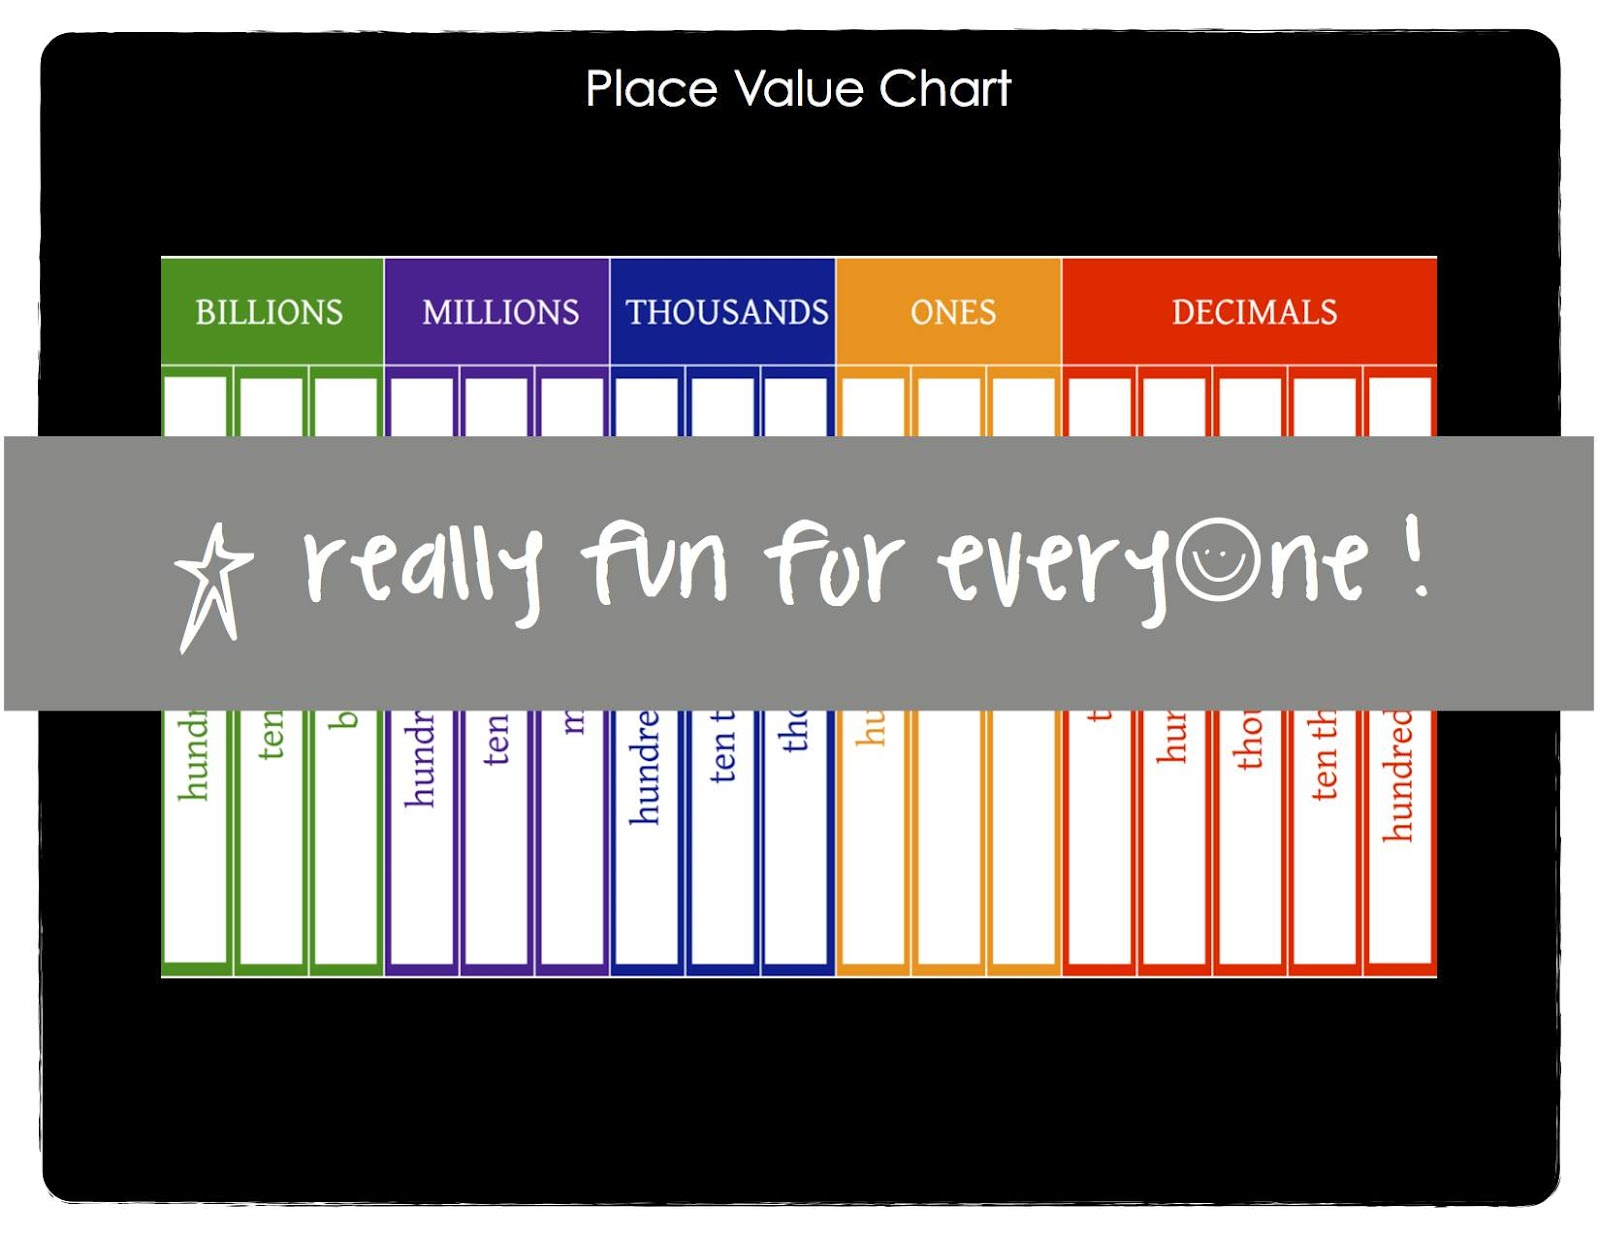 Really fun for everyone place value chart wednesday august 22 2012 nvjuhfo Image collections